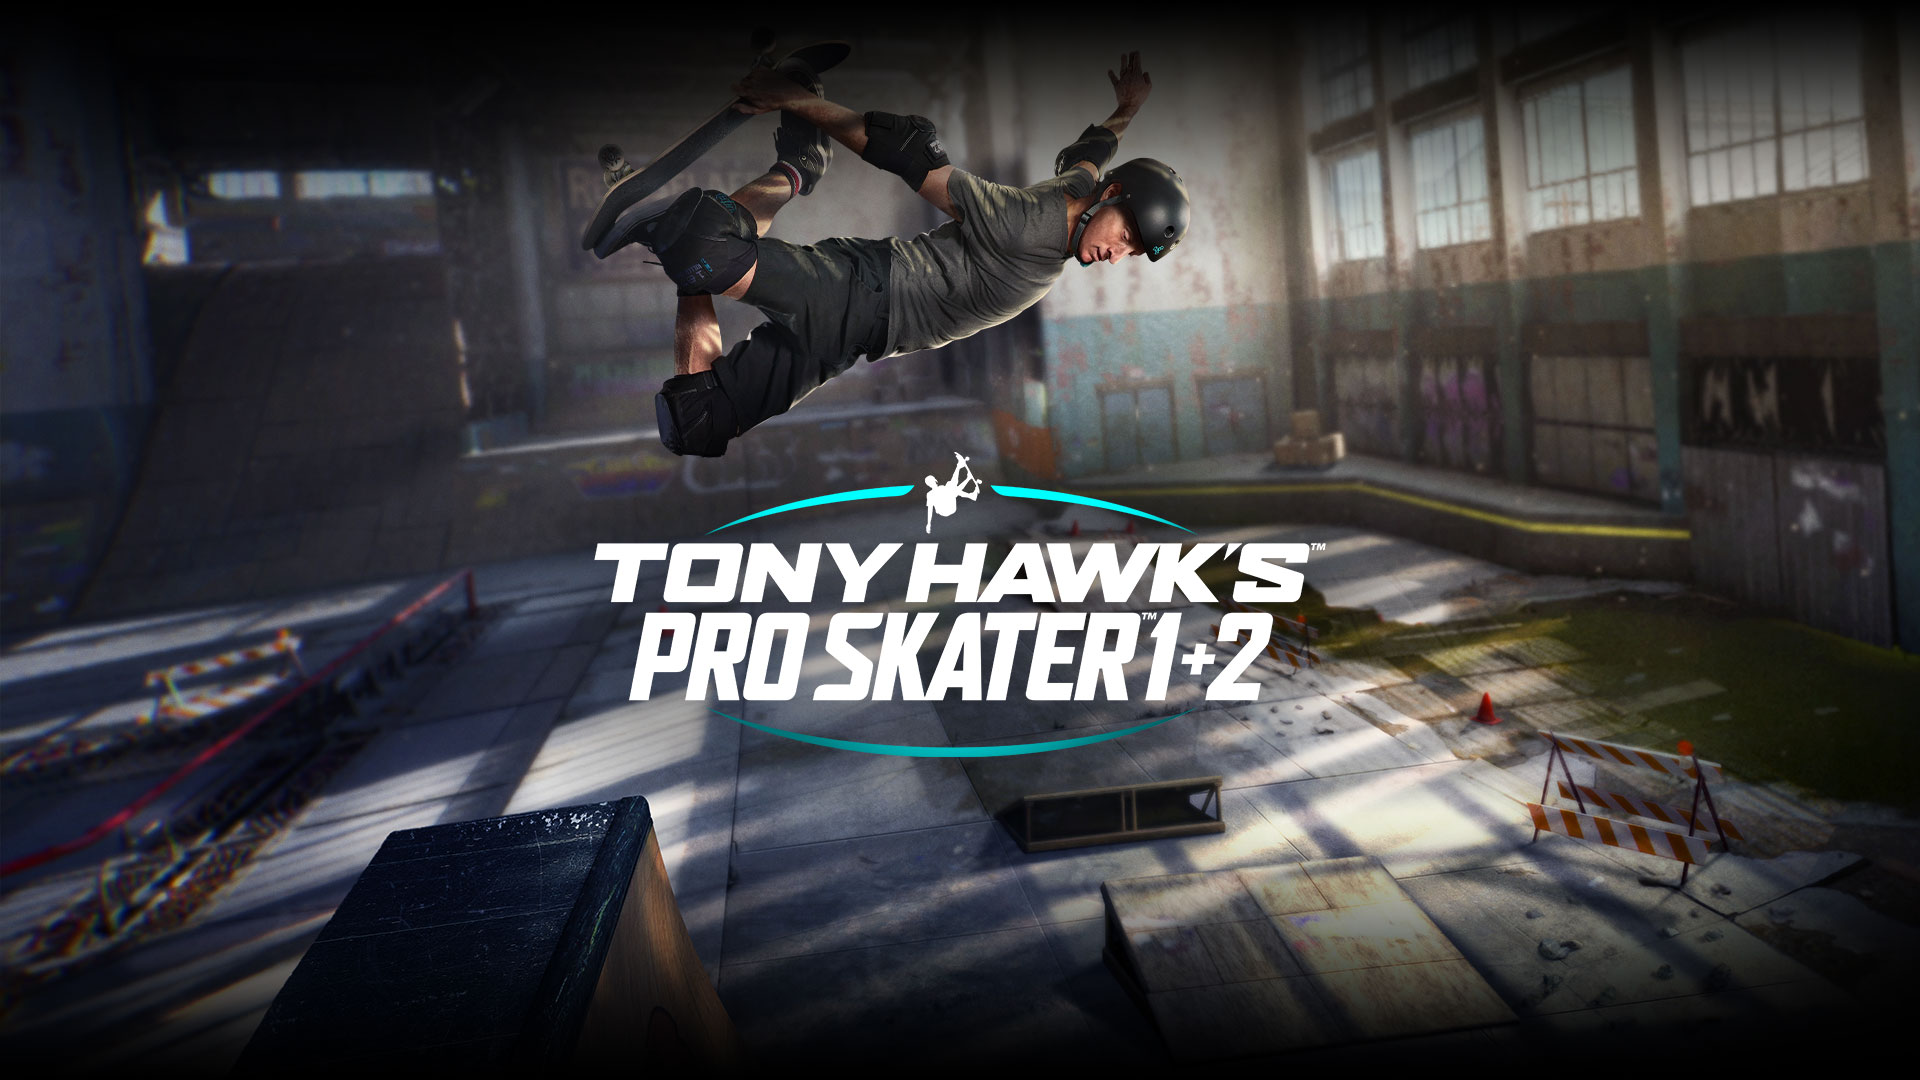 Tony Hawk's Pro Skater 1 + 2, Tony Hawk rides a skateboard in a warehouse.